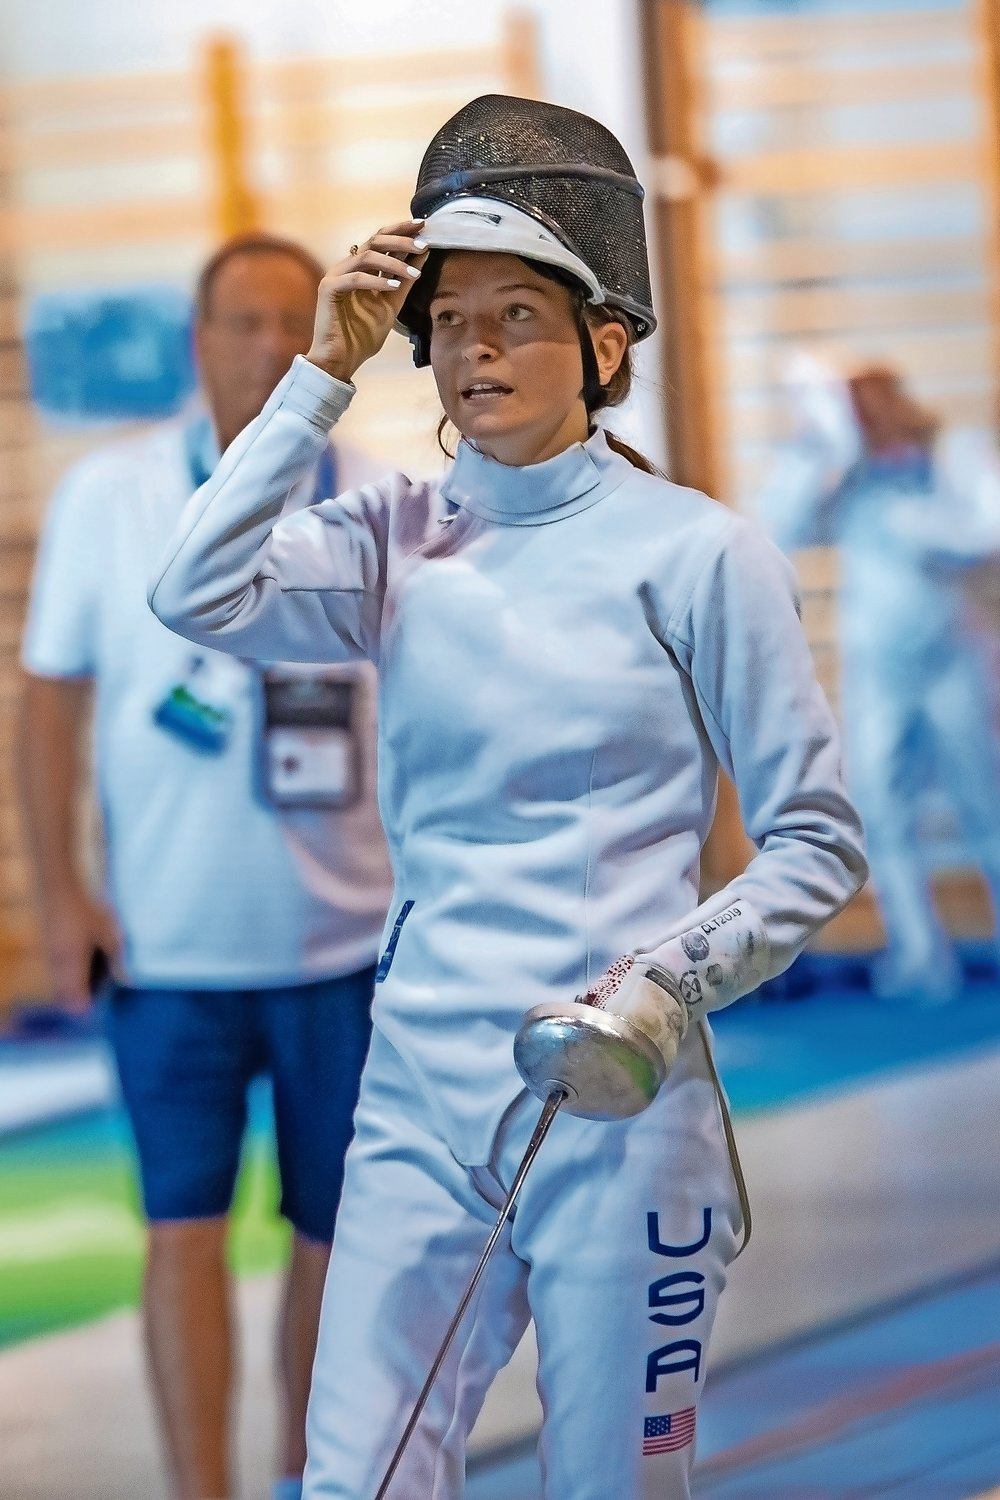 Oyster Bay High School fencer Rachel Kowalsky took home to gold medals at the 2019 European Maccabi Games.